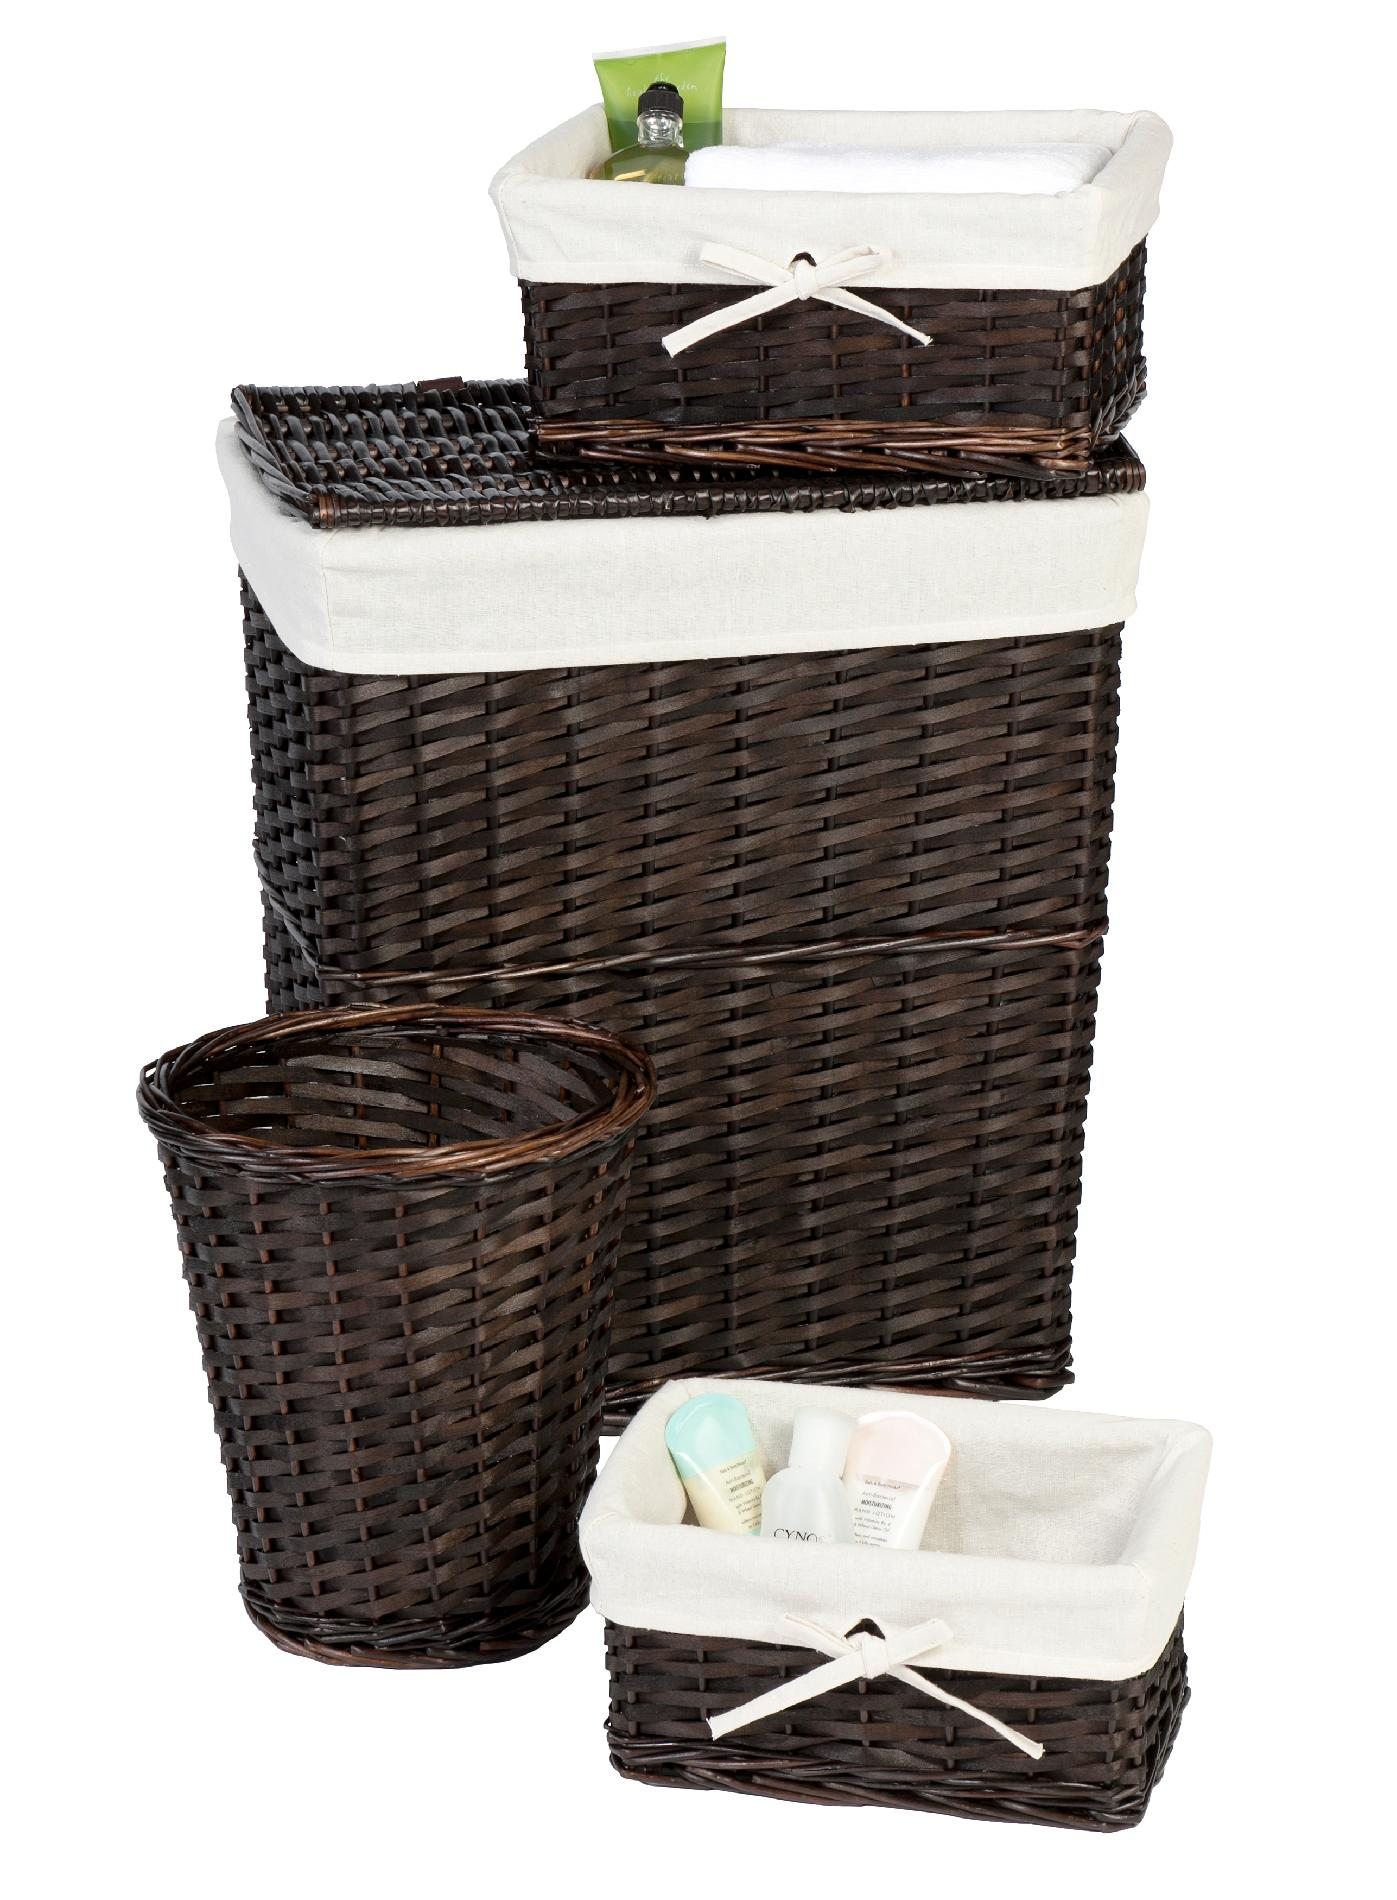 Decorative Laundry Baskets Lancaster Dark Brown Espresso 4 Pc Wicker Hamper Set